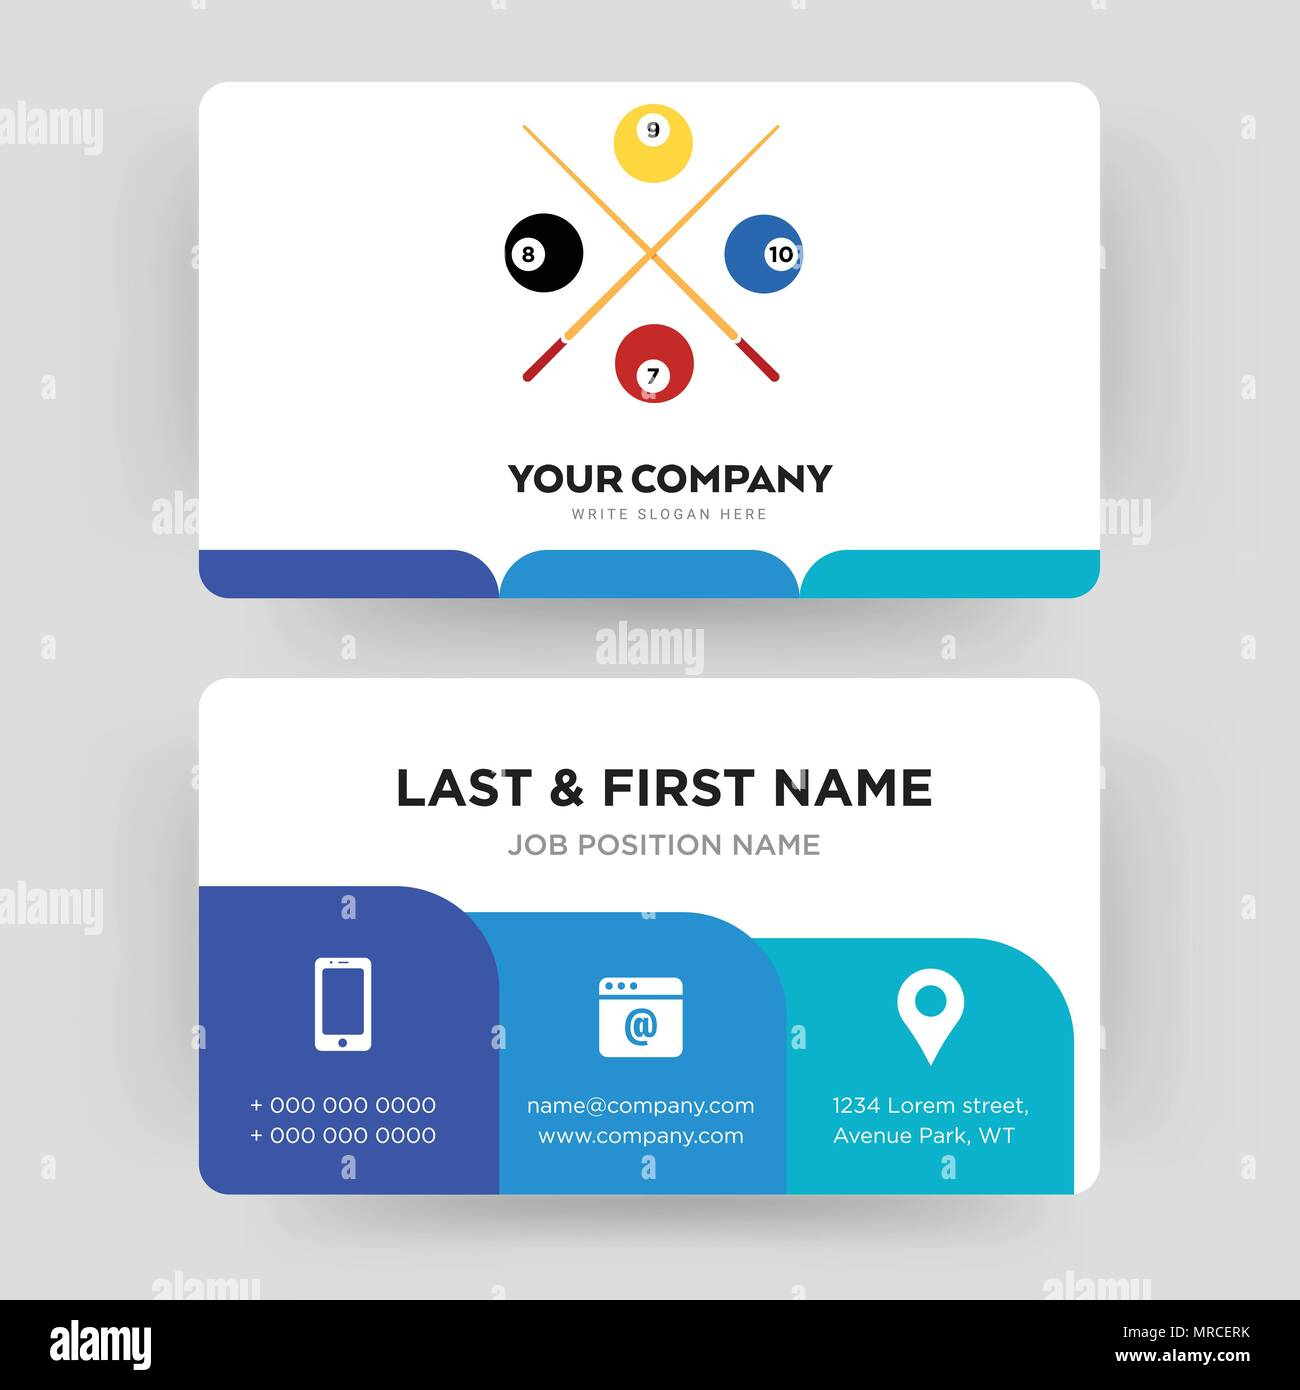 snooker, business card design template, Visiting for your company, Modern Creative and Clean identity Card Vector - Stock Image